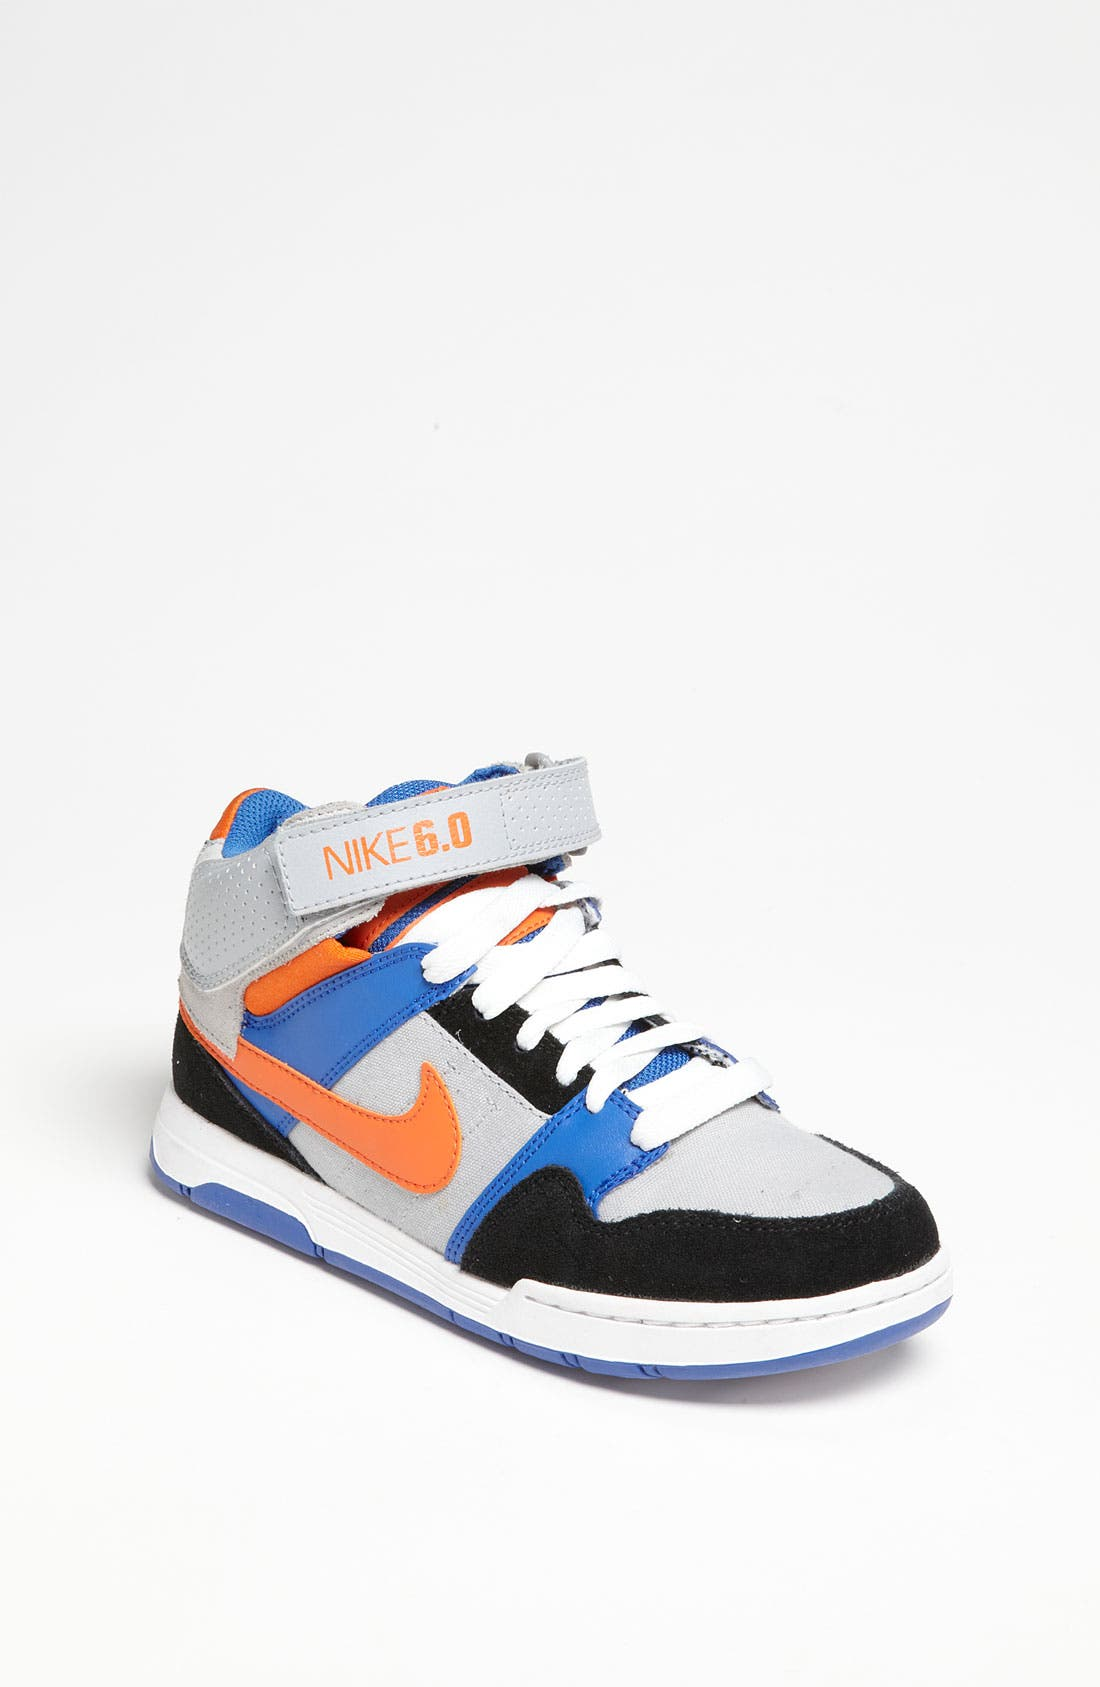 Alternate Image 1 Selected - Nike 6.0 'Mogan Mid 2 Jr.' Sneaker (Little Kid & Big Kid)